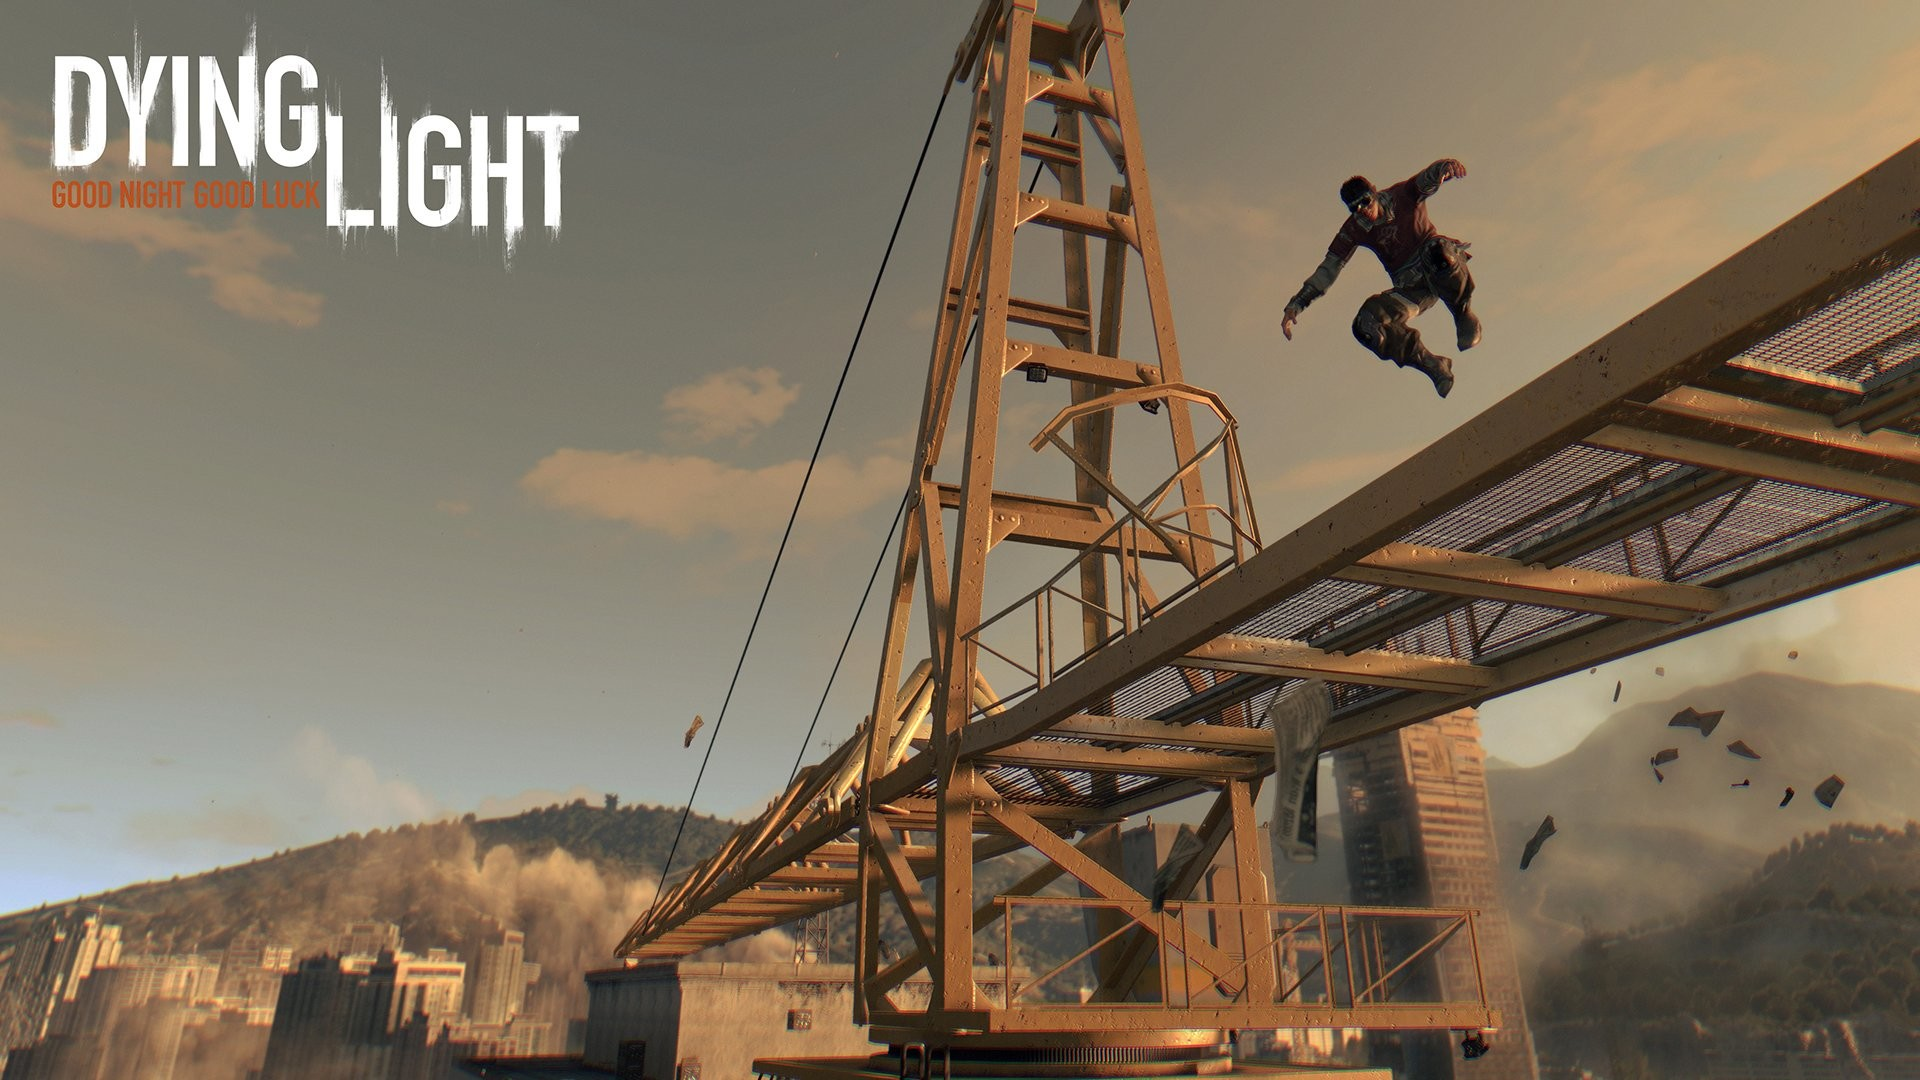 1920x1080 Dying Light Iphone 5 Wallpaper Id 58249 Horror Survival Zombie Apocalyptic Dark